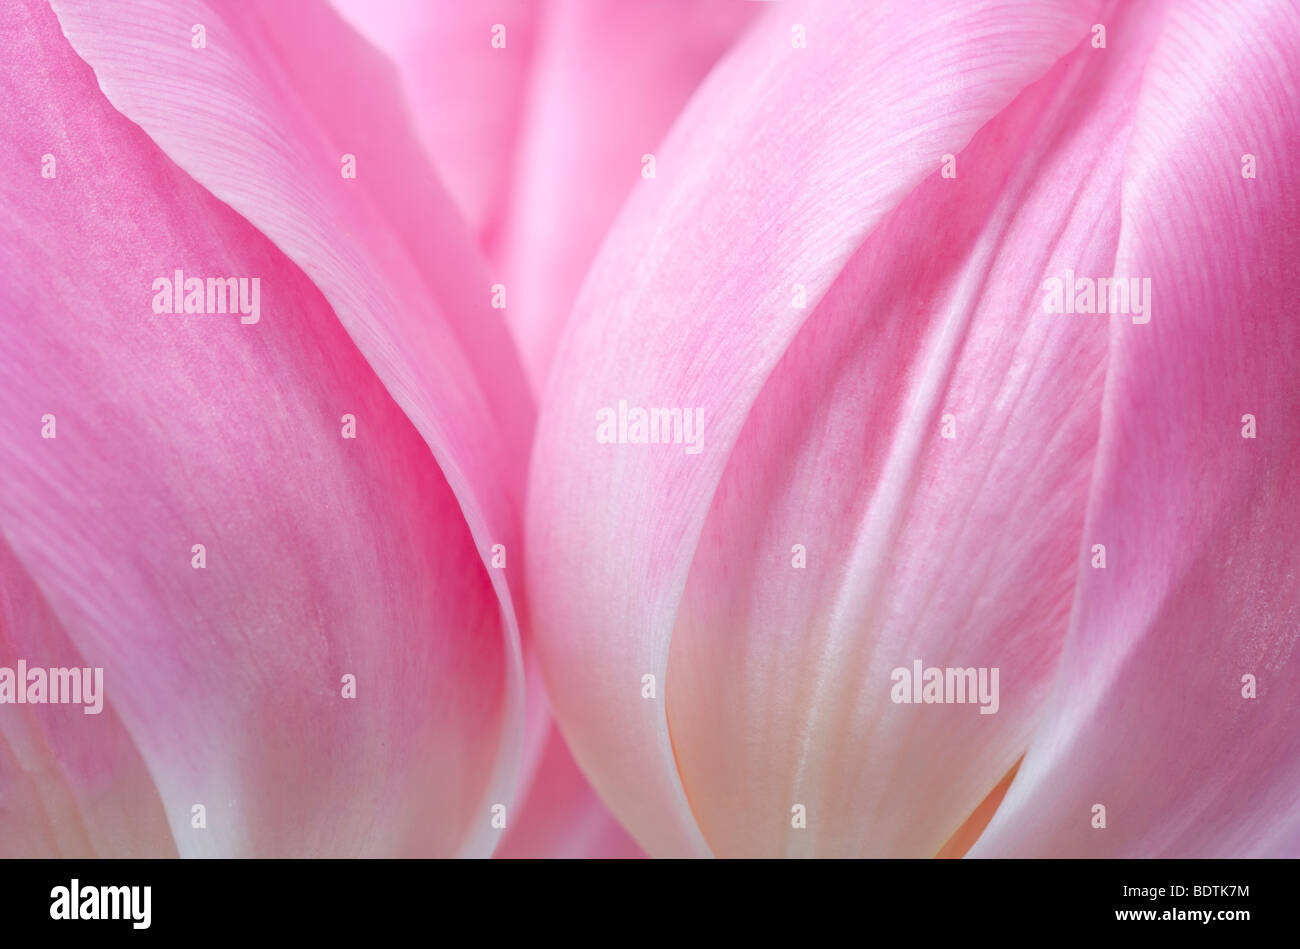 Pink Tulips Flowers - Stock Image